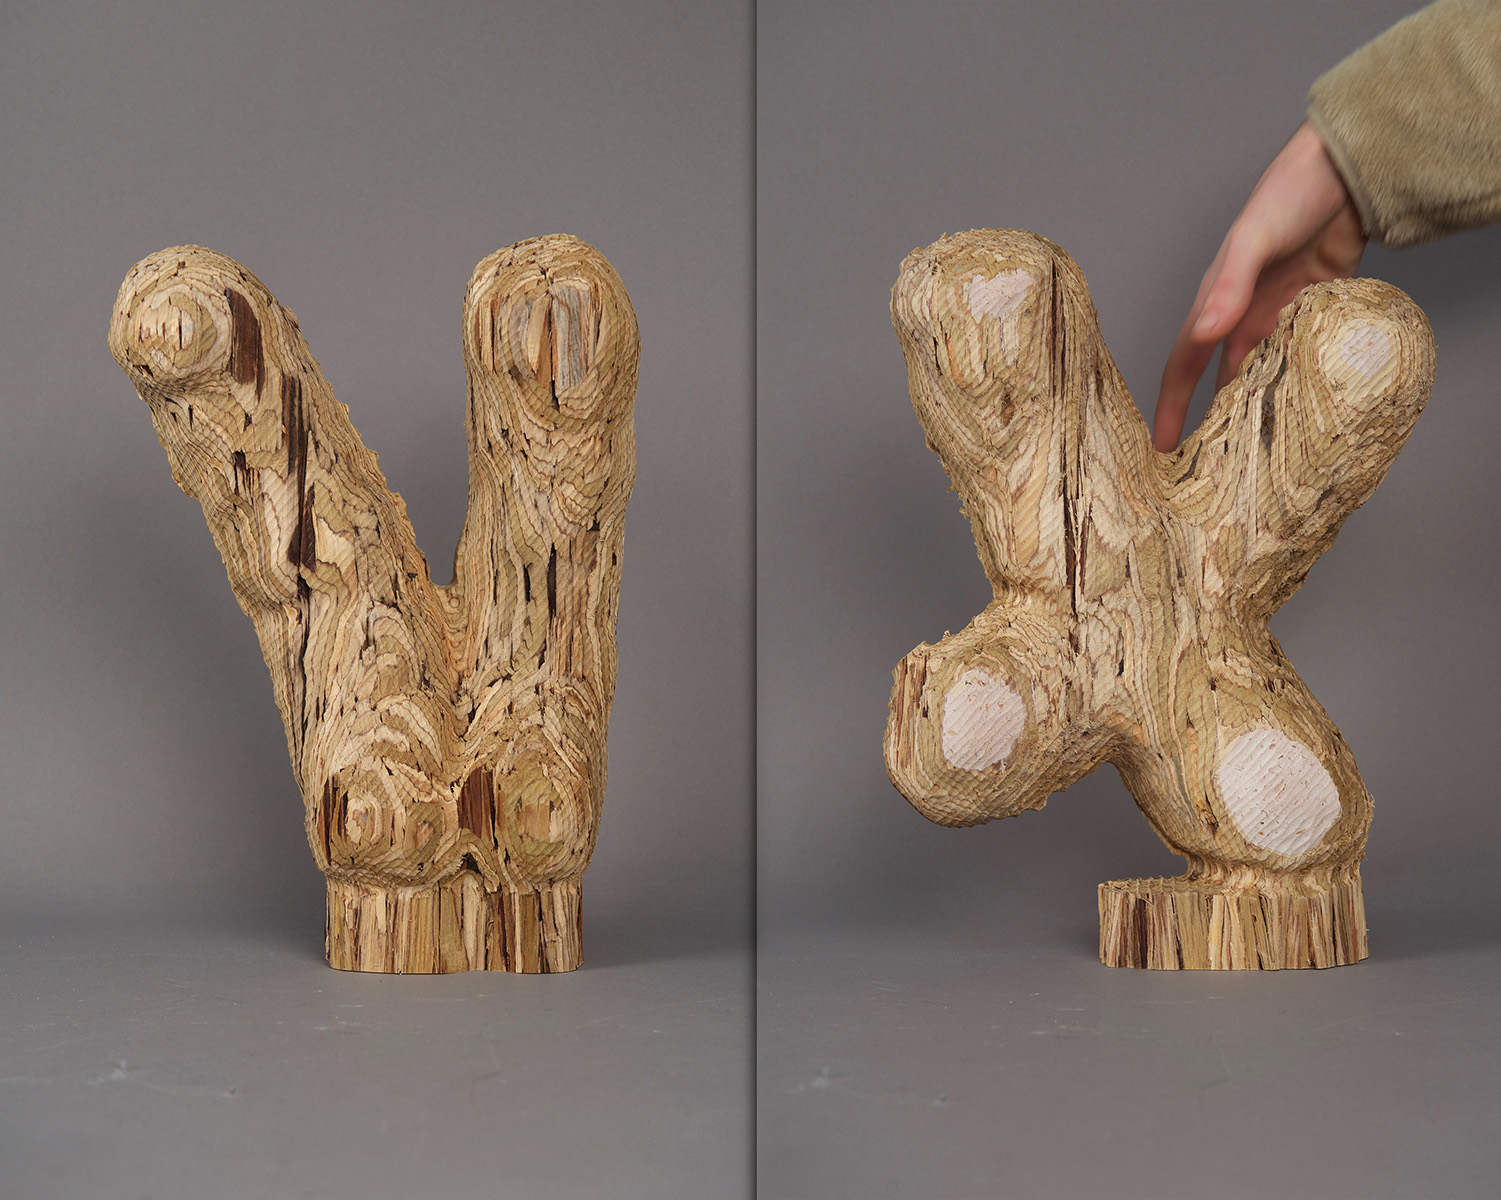 Wooden sculpture of X and Y chromosomes made from 3D cheese doodle scans